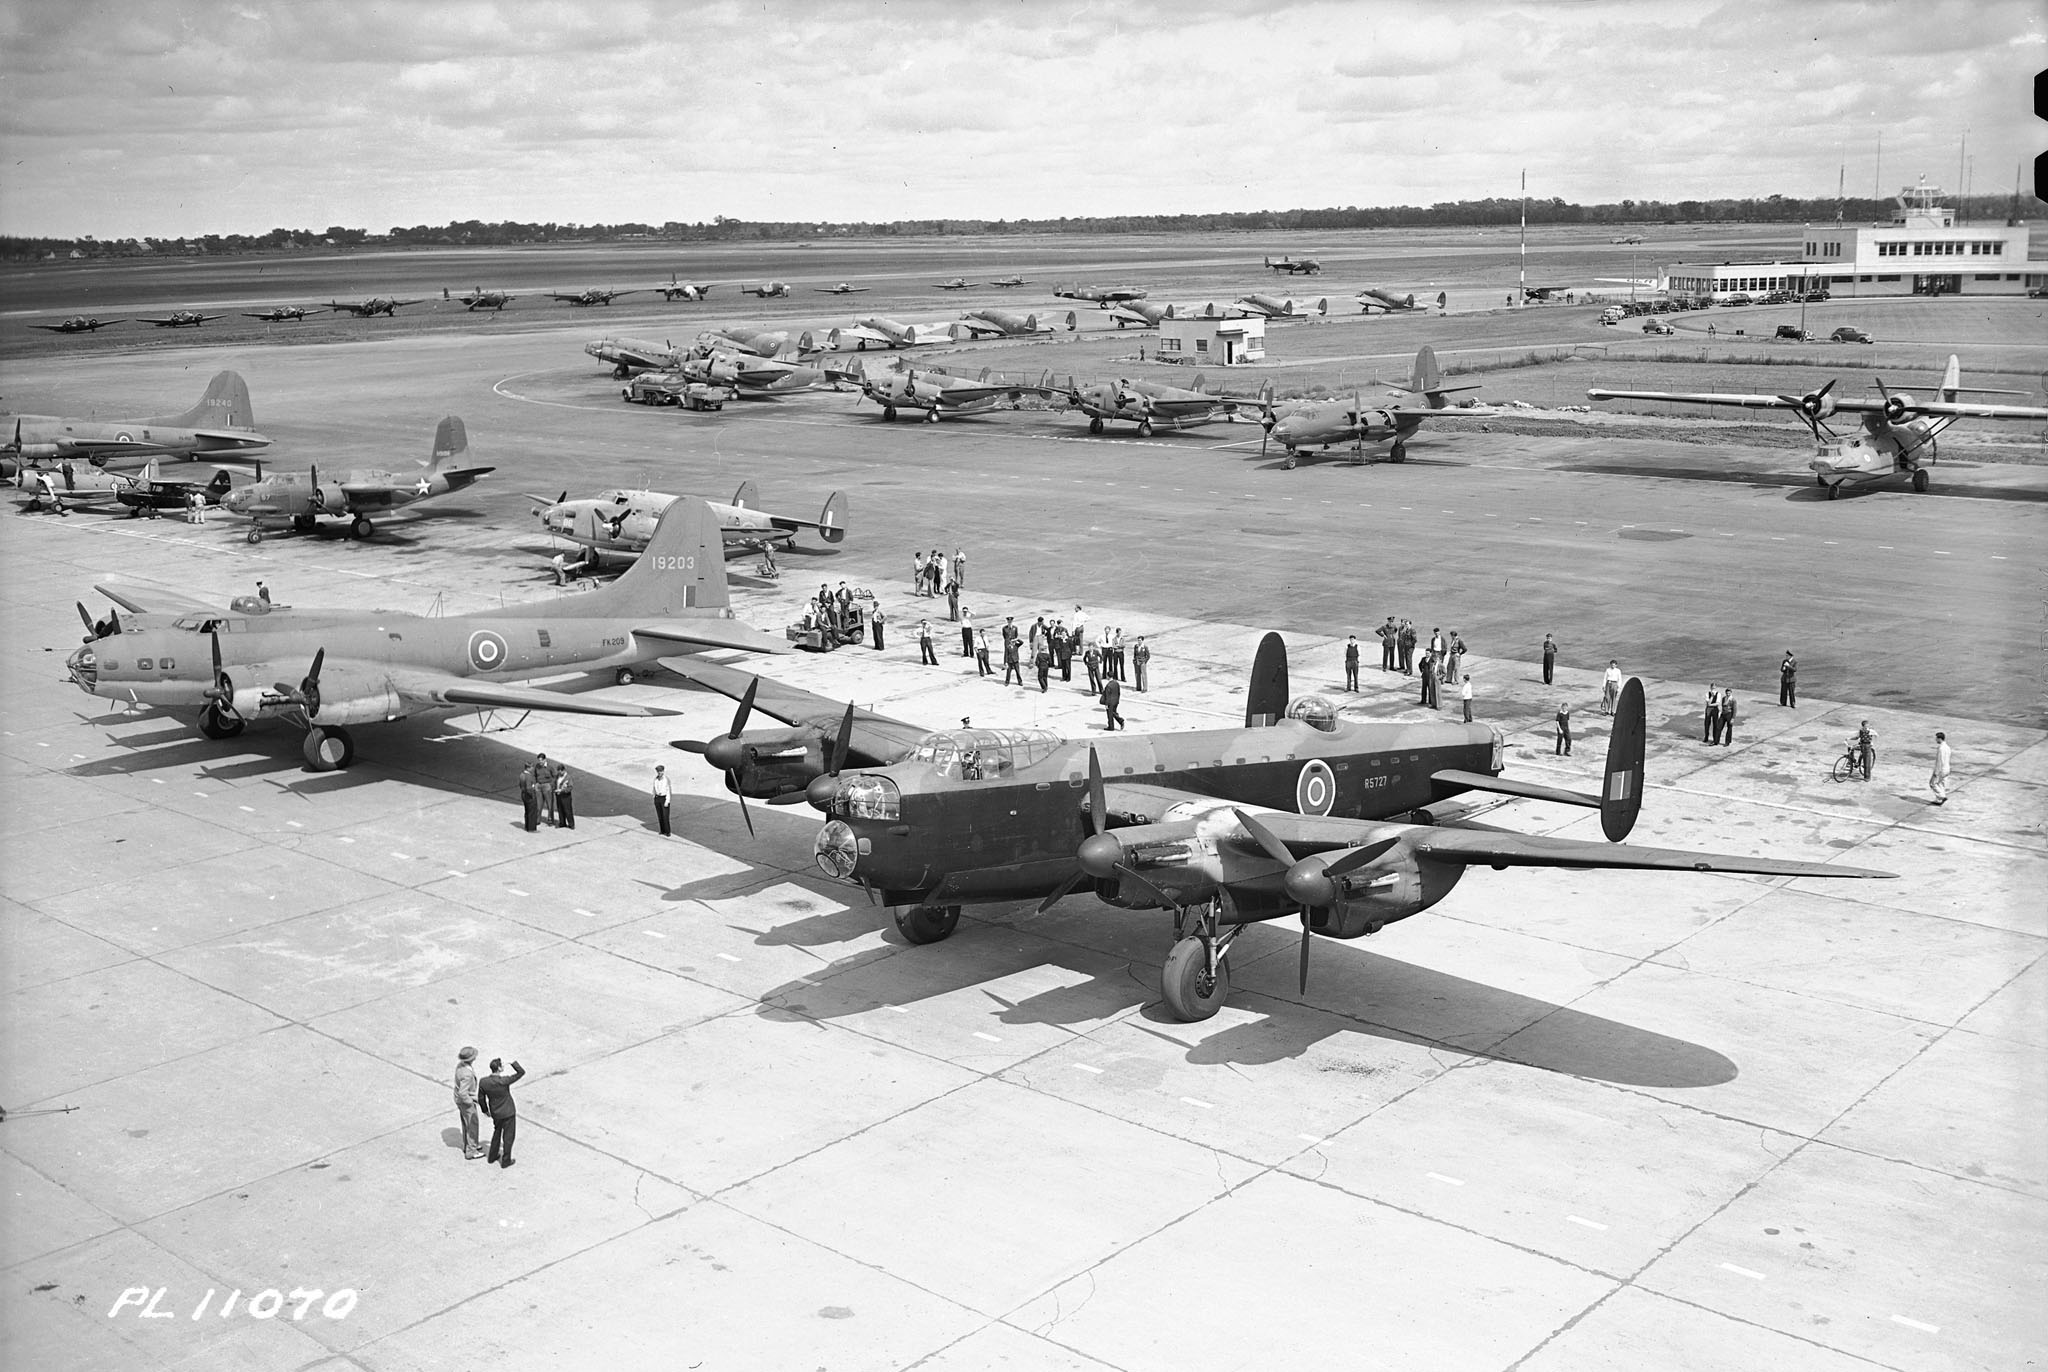 On August 24, 1942, at Montreal, Quebec's Dorval Airport, RCAF personnel and guests get a close-up view of the huge Lancaster bomber being built in Canada – the aircraft that Royal Canadian Air Force crews fly night after night to smash at the industrial centres of the Third Reich. PHOTO: DND Archives, PL-11070